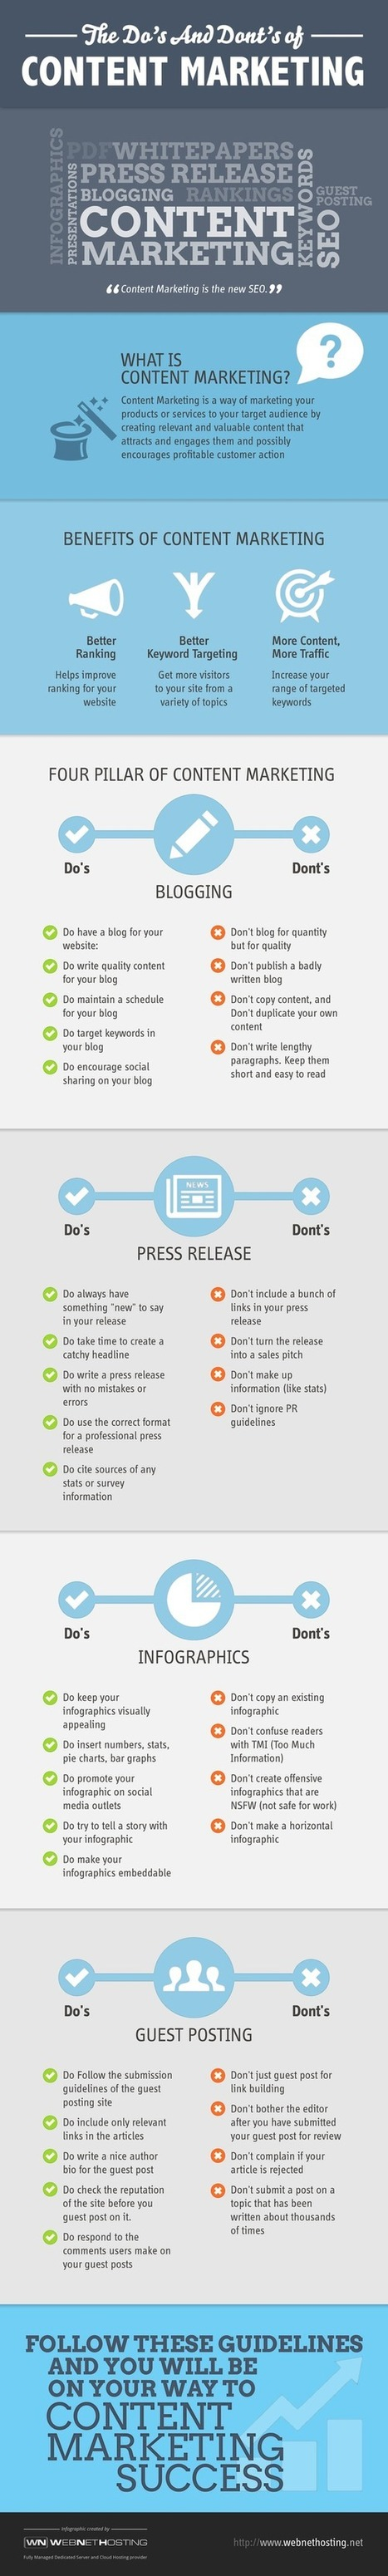 The Do's and Dont's of Content Marketing - Infographic | Lean content | Scoop.it